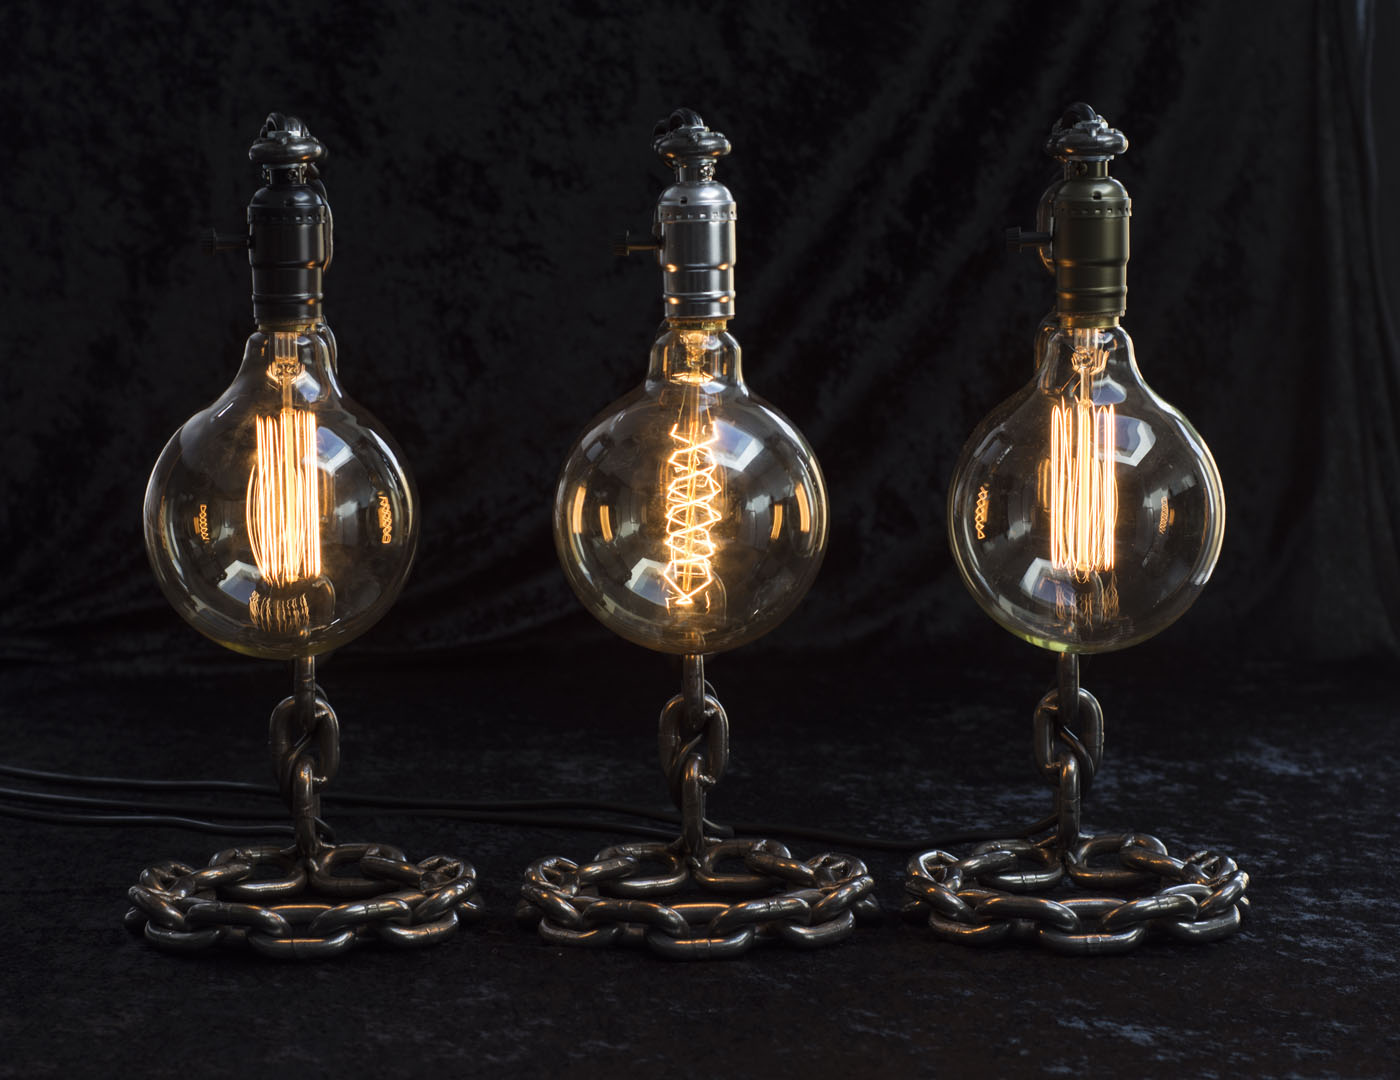 retro and rustic lamps photography